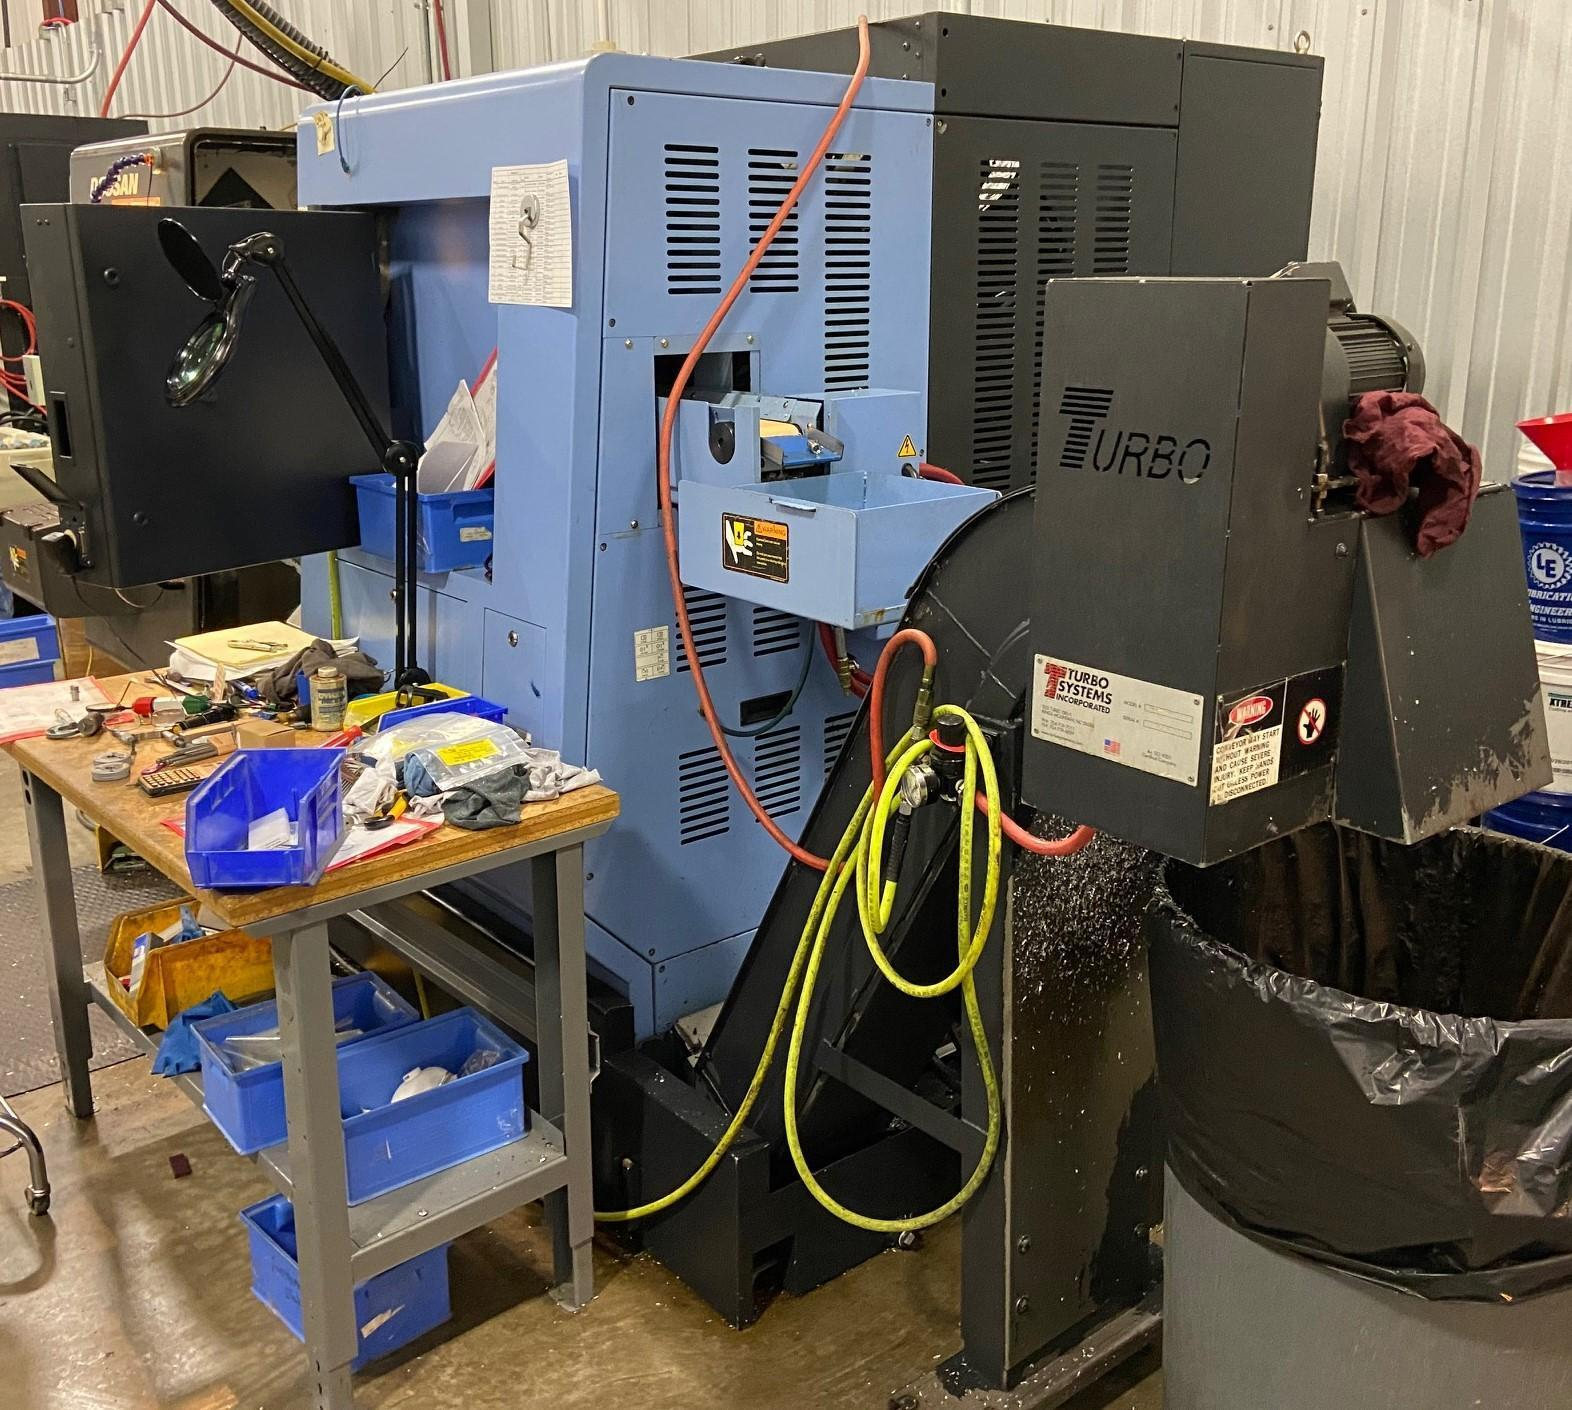 Doosan Puma TT1500SY Twin Turret Multi-Axis CNC Lathe 2007 with: Fanuc Series 18i-TB CNC Control, Twin Spindle, Tool Setter, and Chip Conveyor.